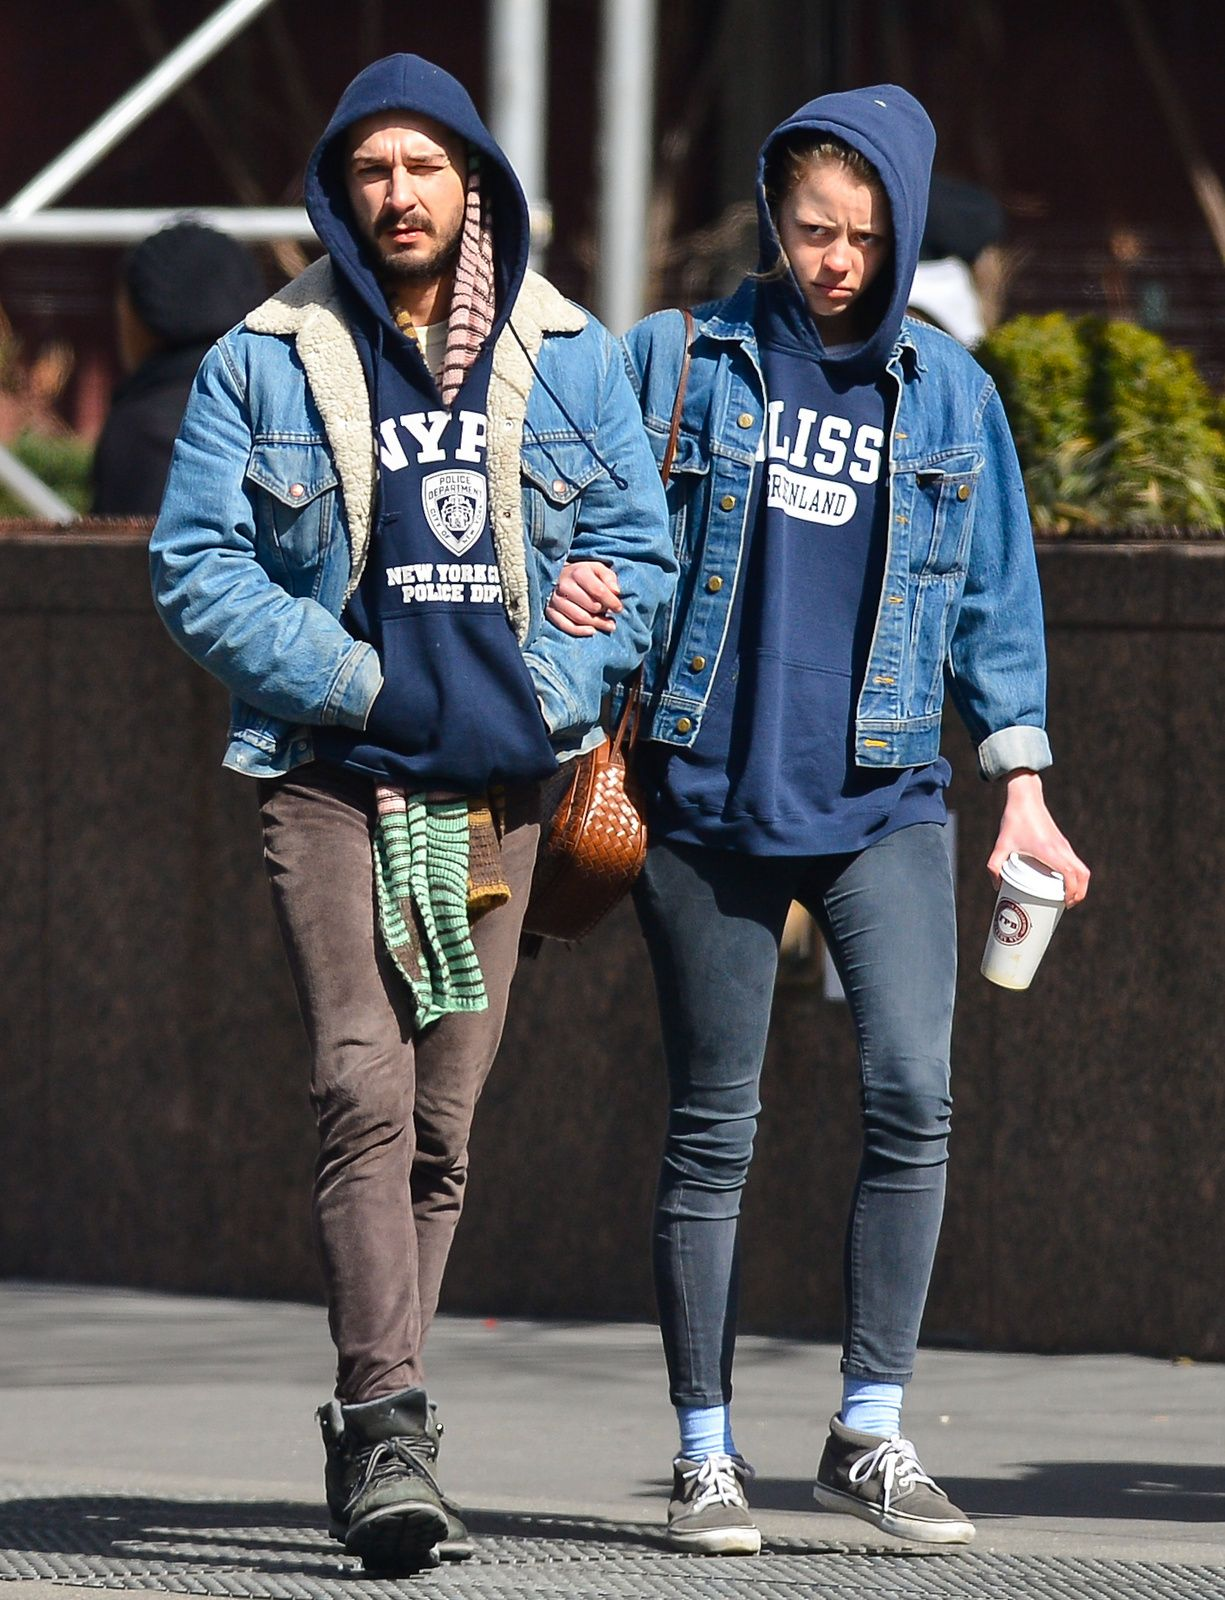 Shia Labeouf and Mia Goth are dating and dressing alike